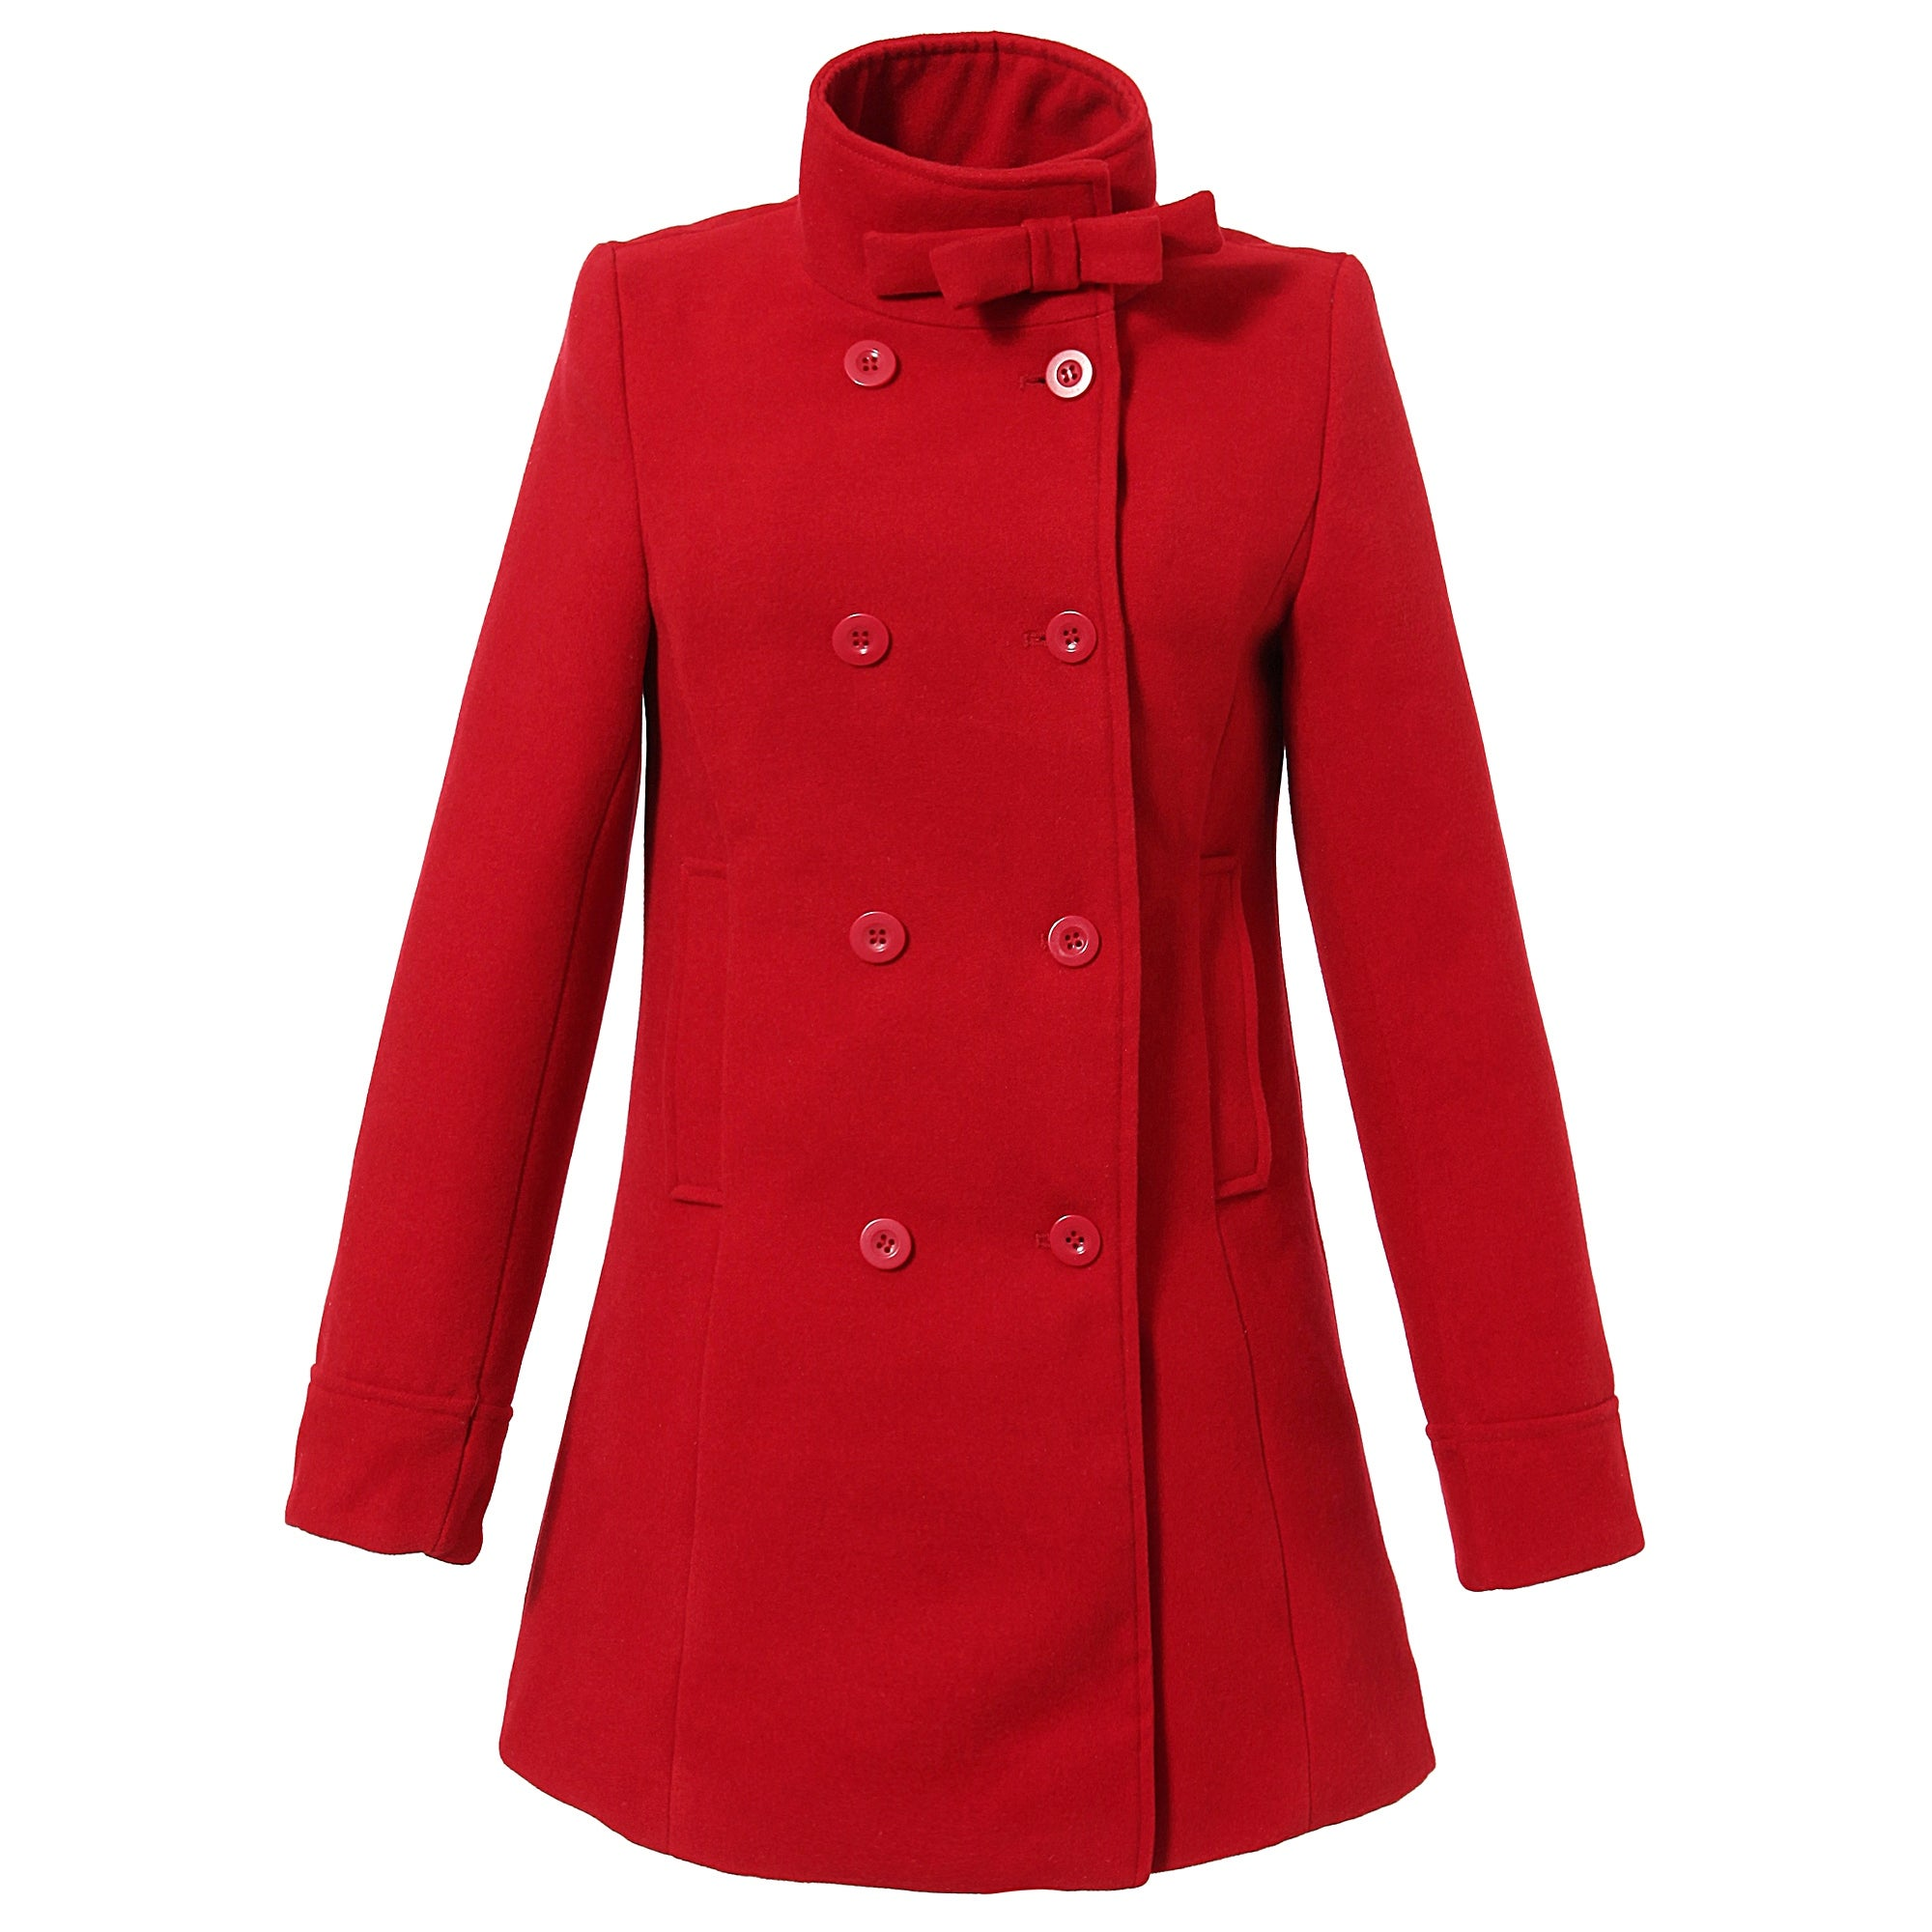 c343b2d79b66 Buy Girls' Outerwear Online at Overstock | Our Best Girls' Clothing Deals